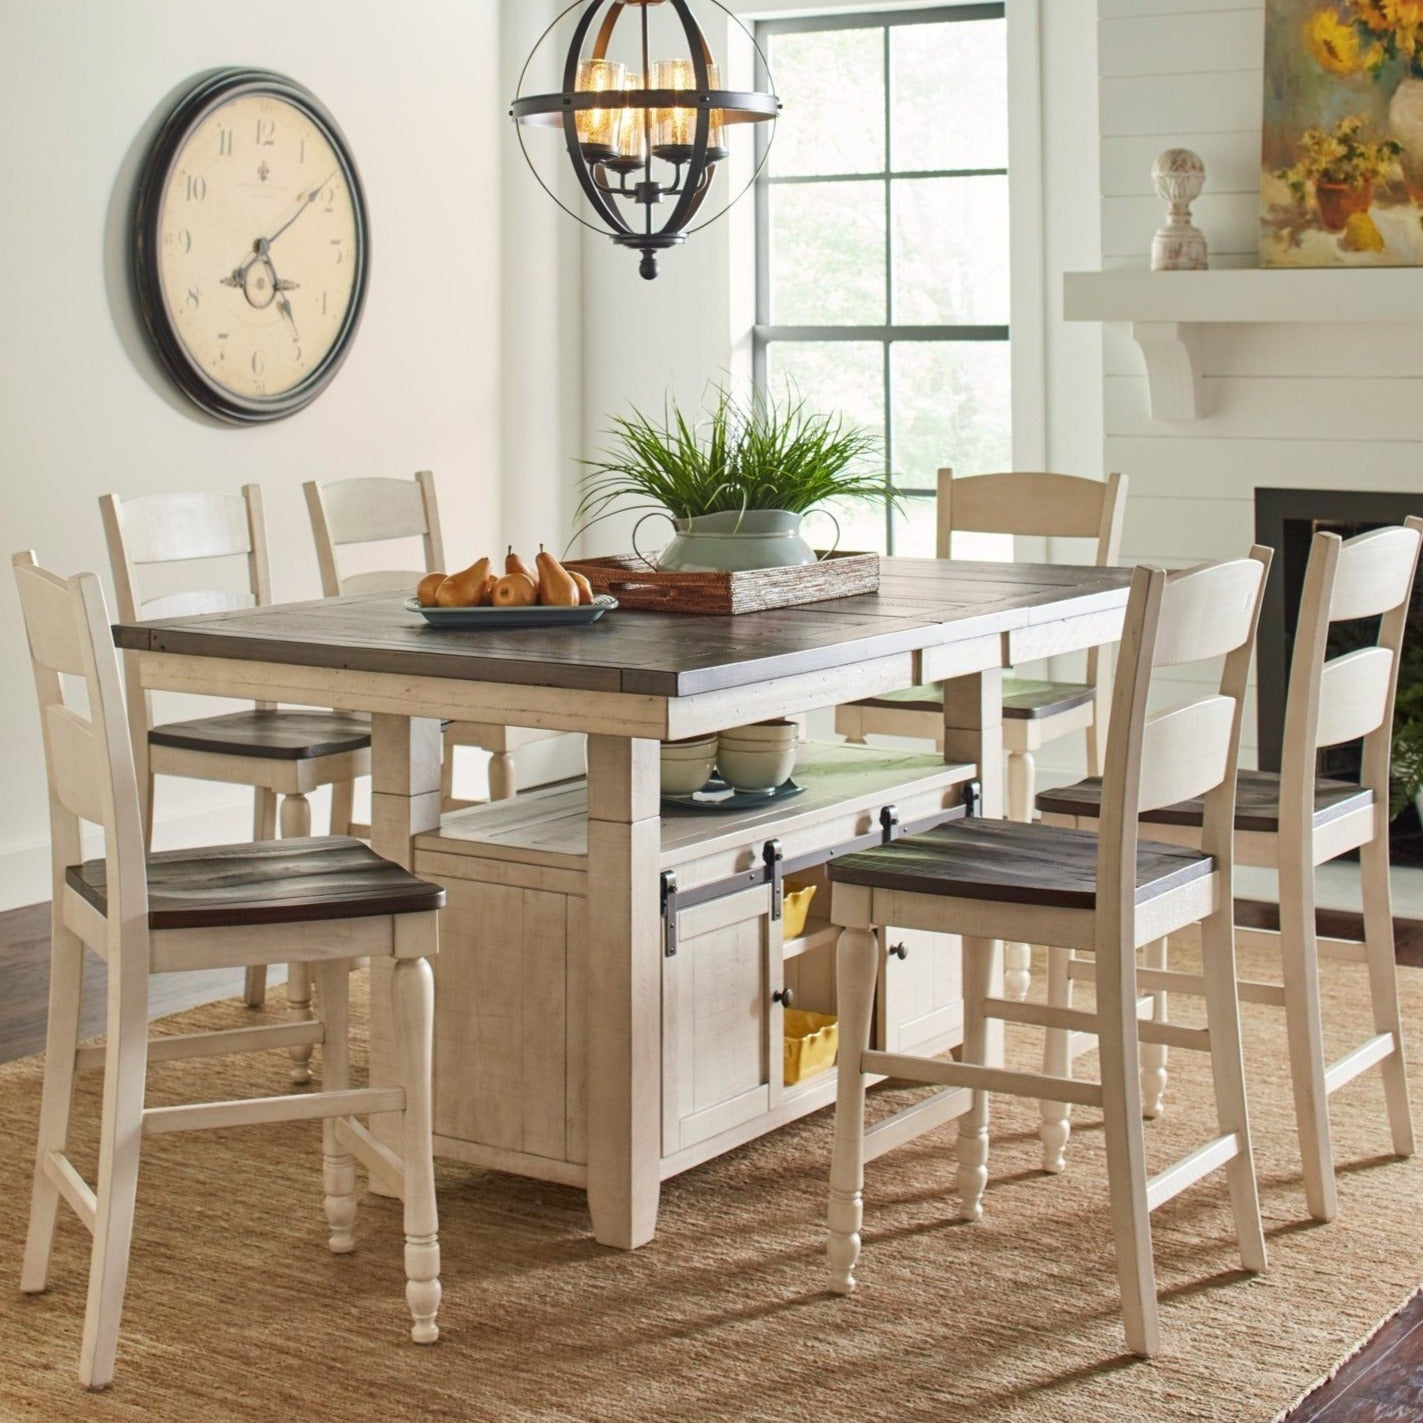 Urban Loft 7-Piece Hi-Lo Adjustable Height Dining Set in Vintage White